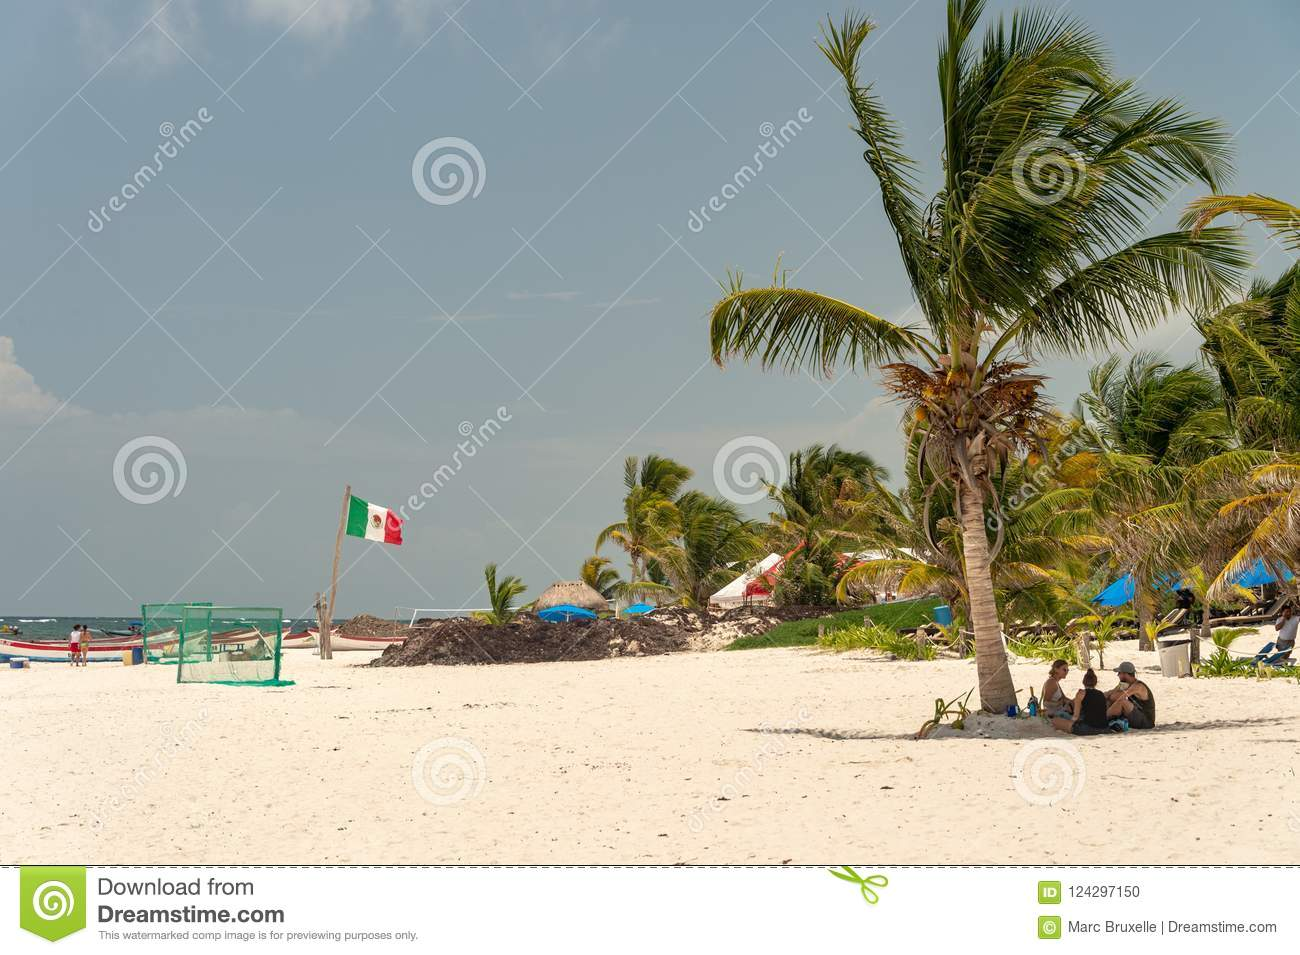 Playa Tulum beach with palm trees and mexican flag.